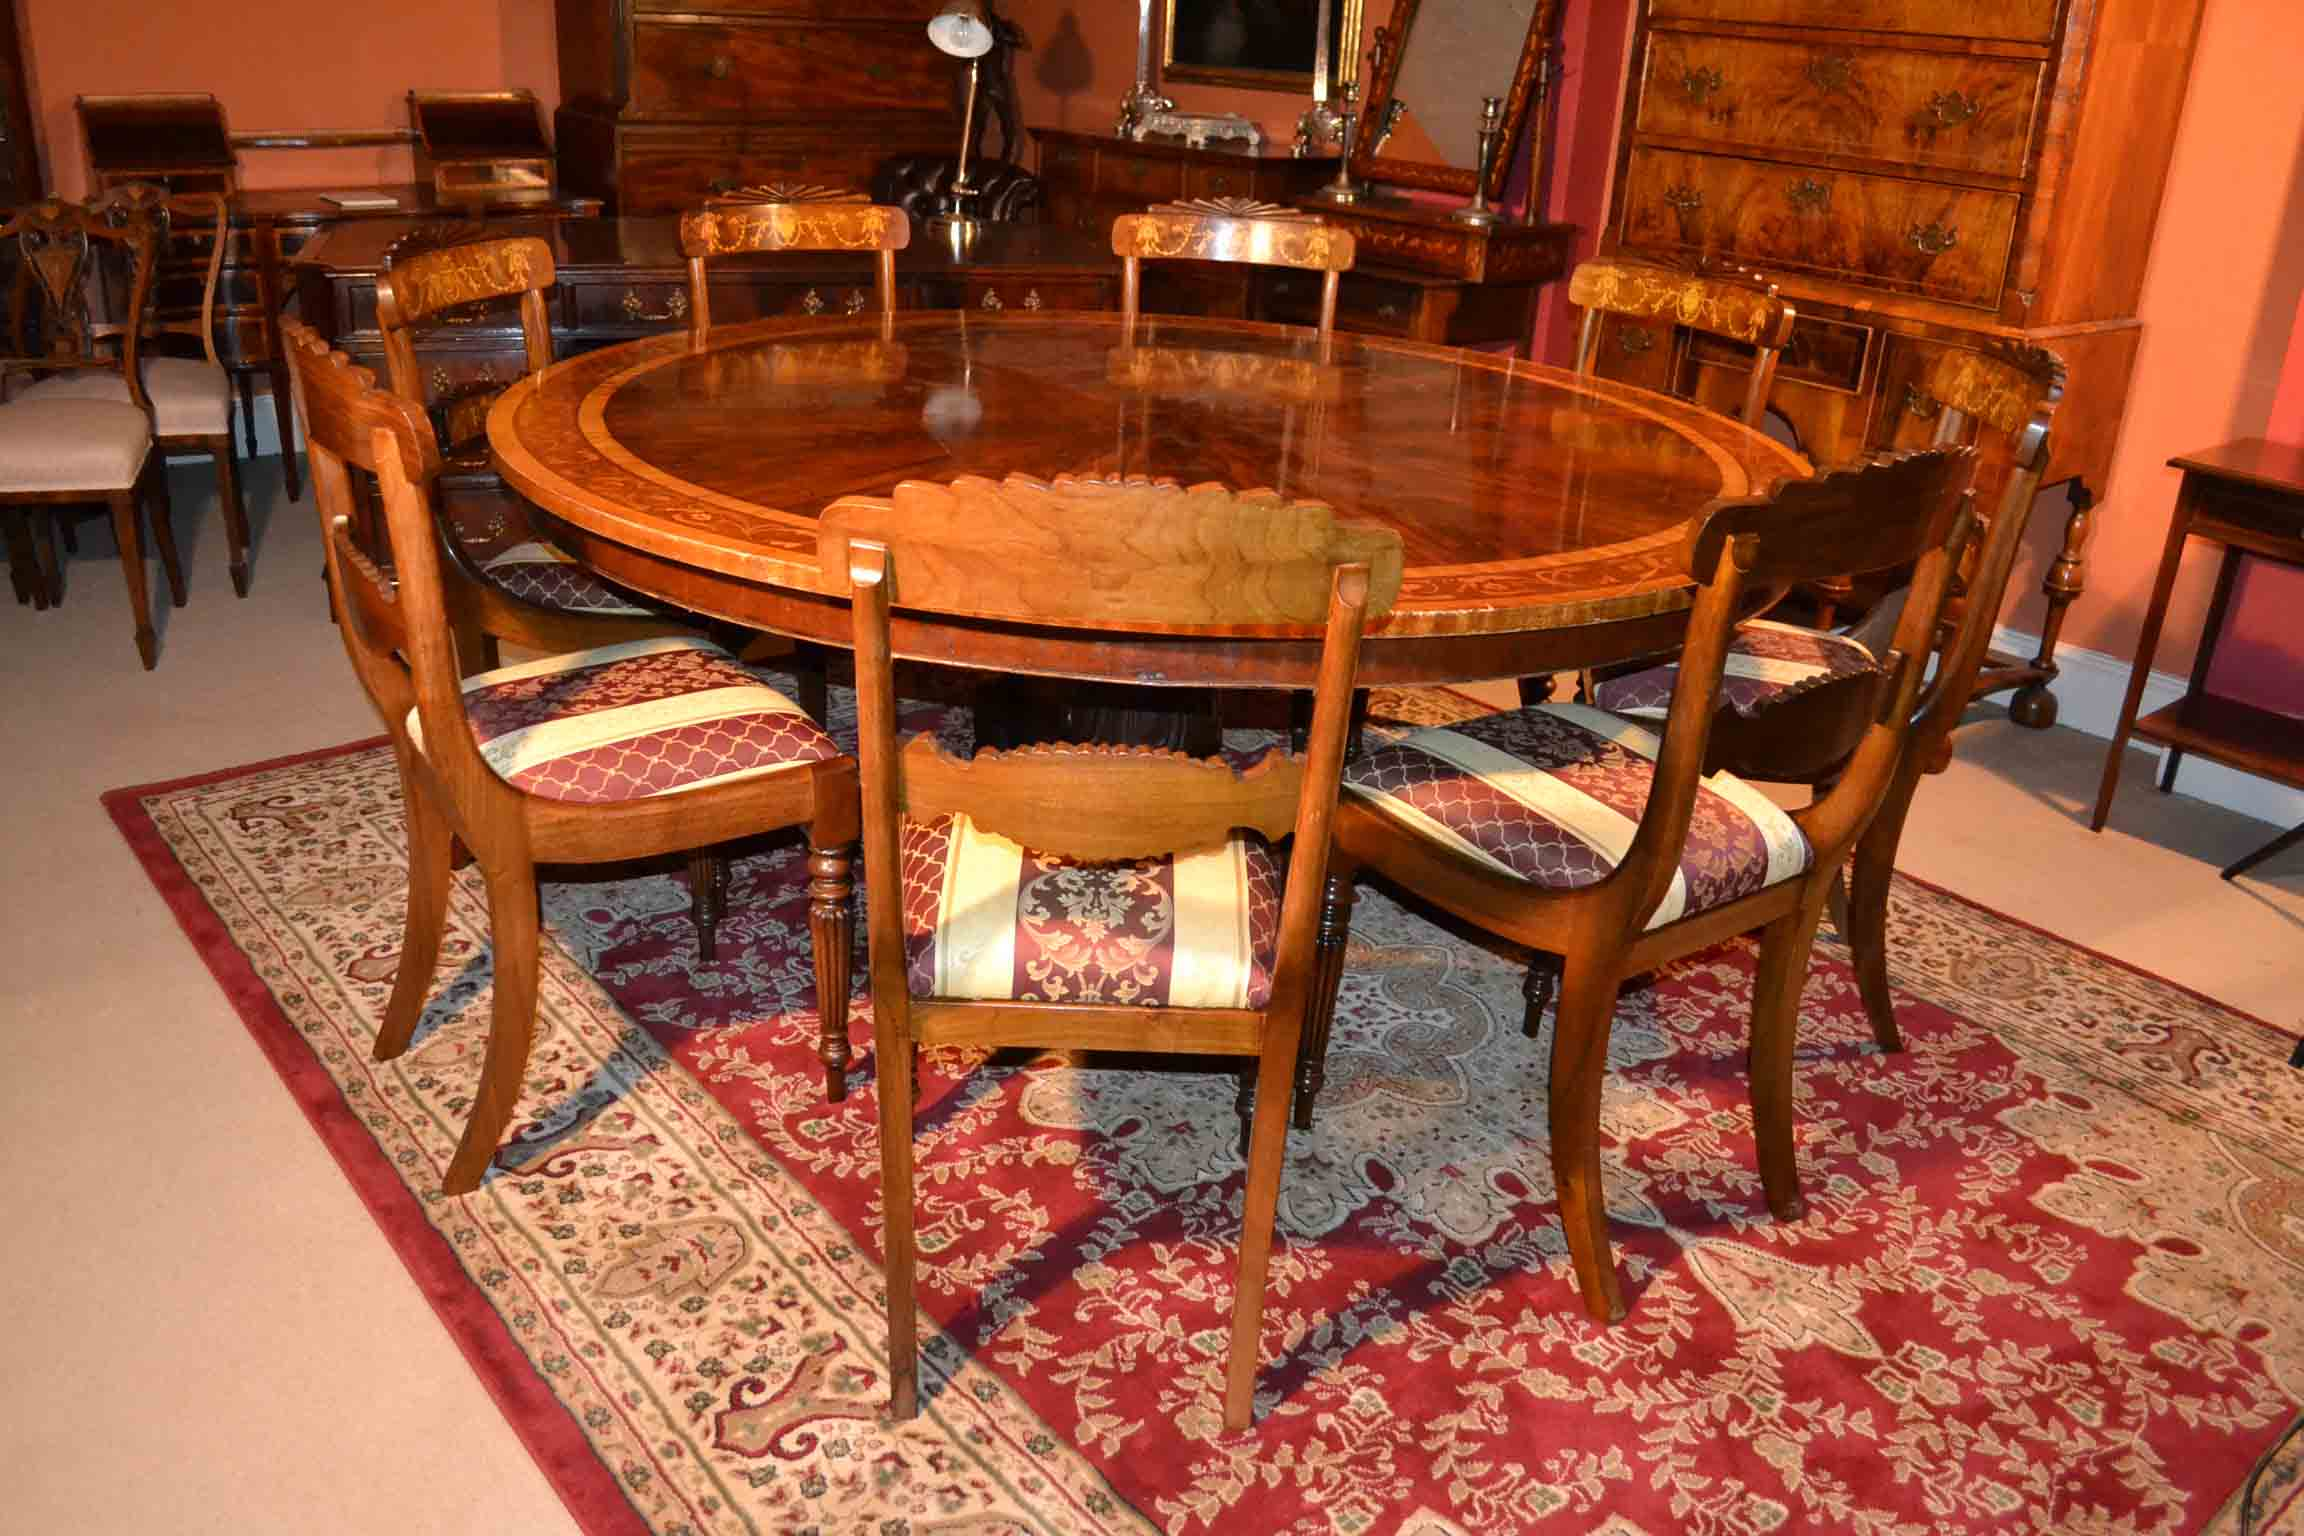 Vintage Dining Table 8 Chairs 6 Ft Round Mahogany